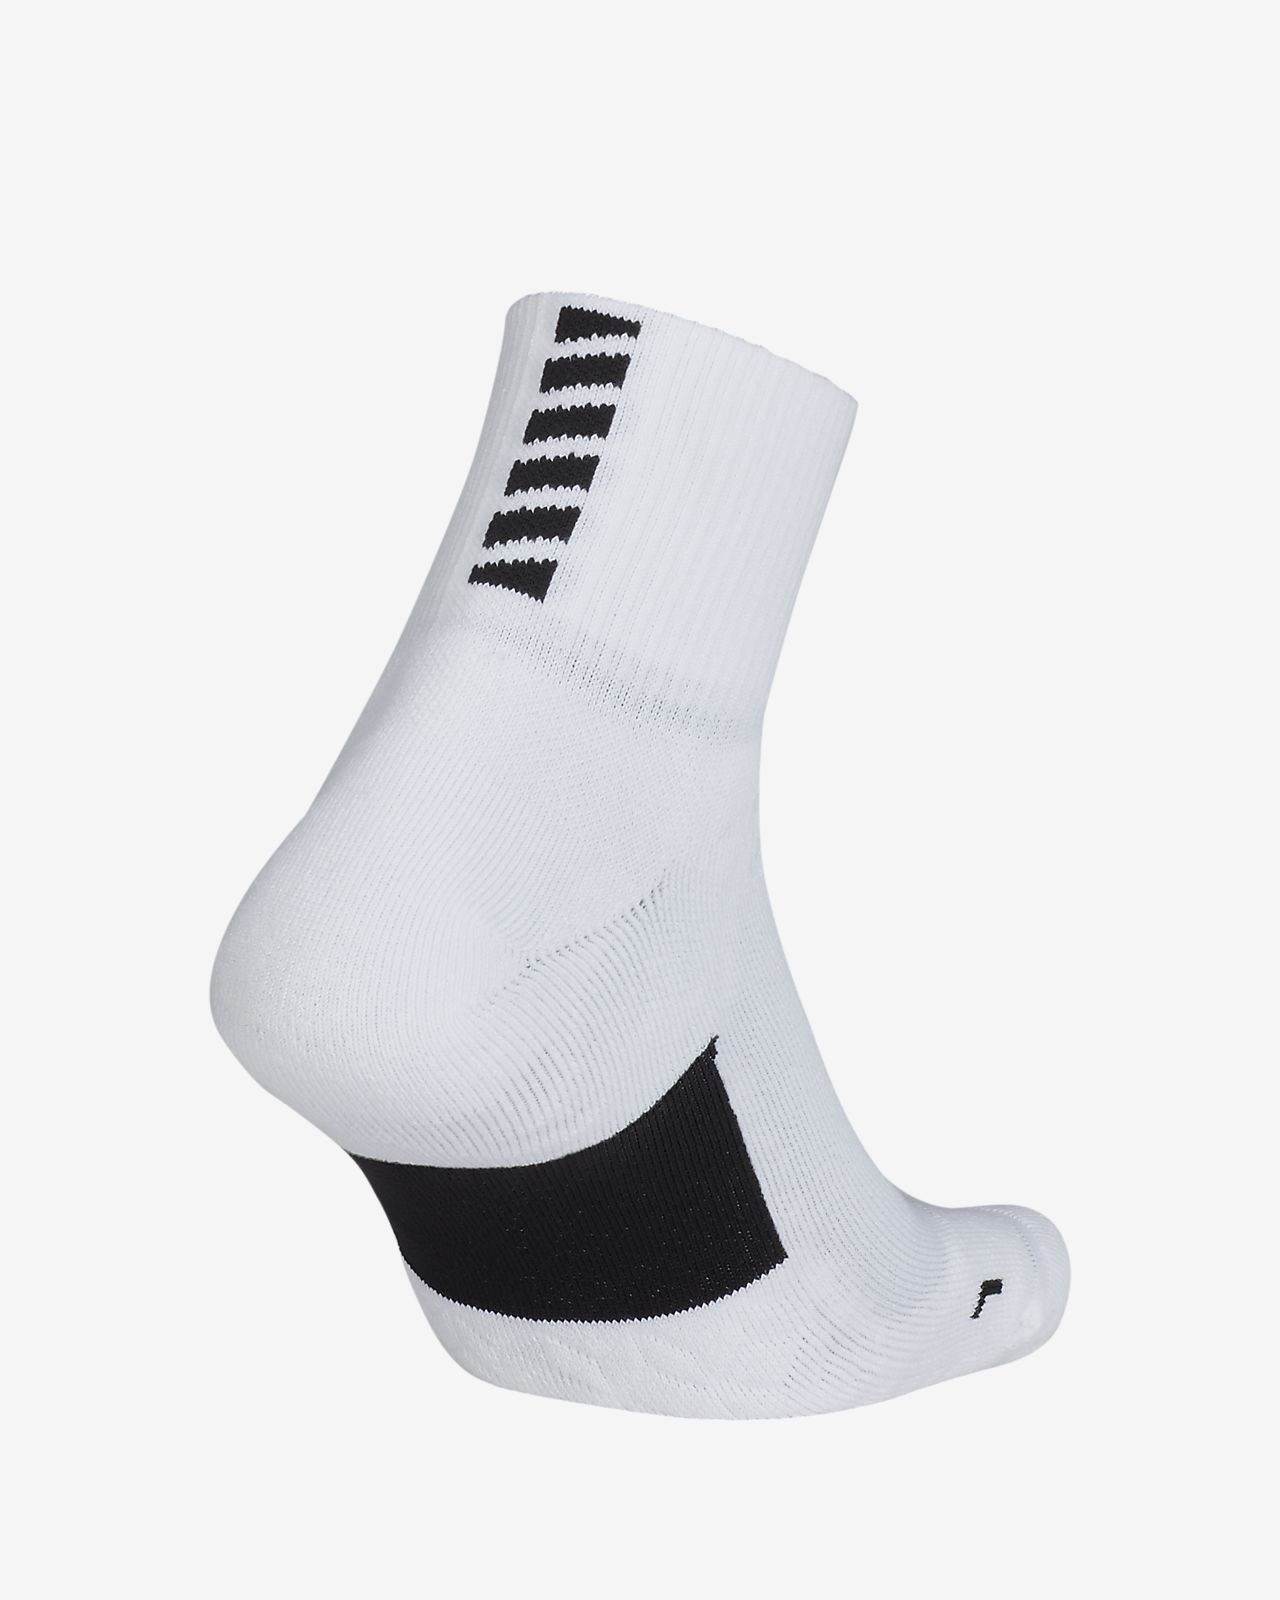 272ce4332e5f Nike Elite Cushion Quarter Running Socks. Nike.com AU